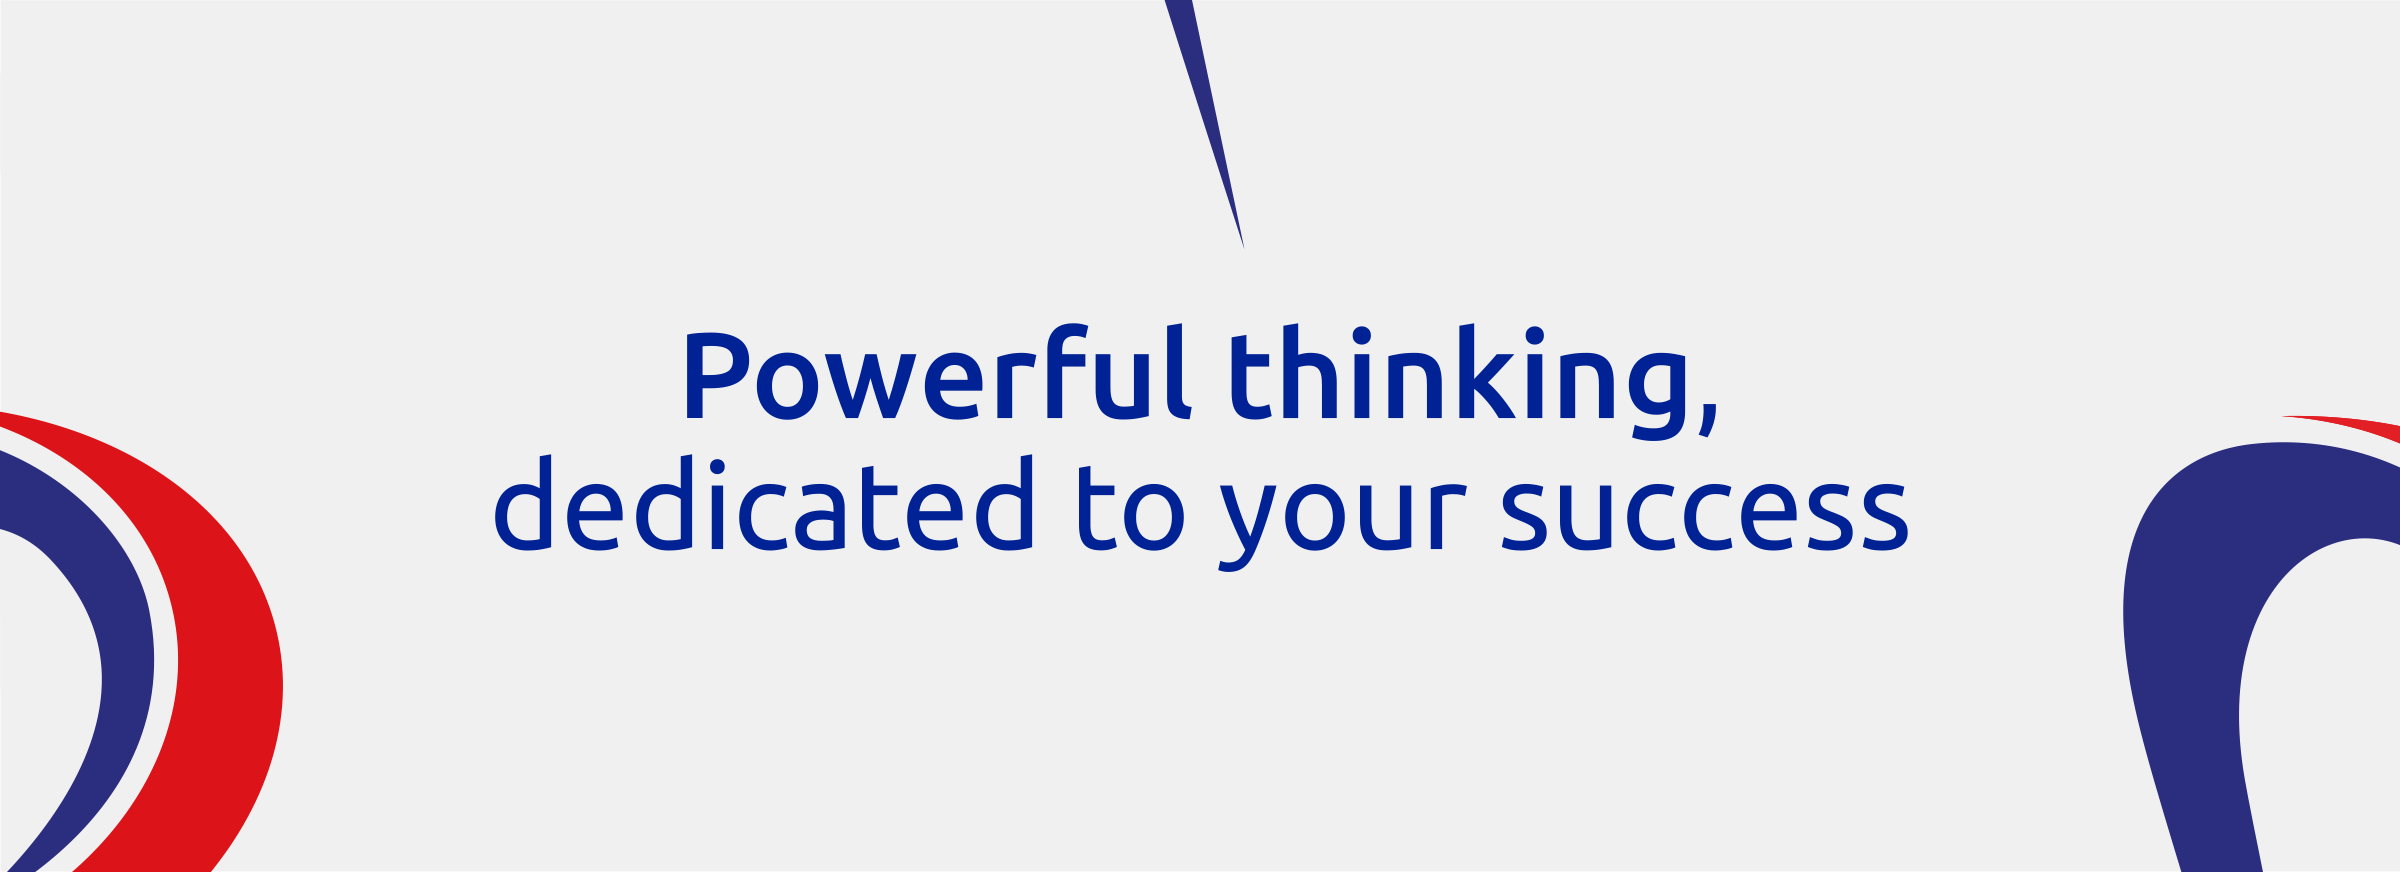 Powerful thinking, dedicated to your success